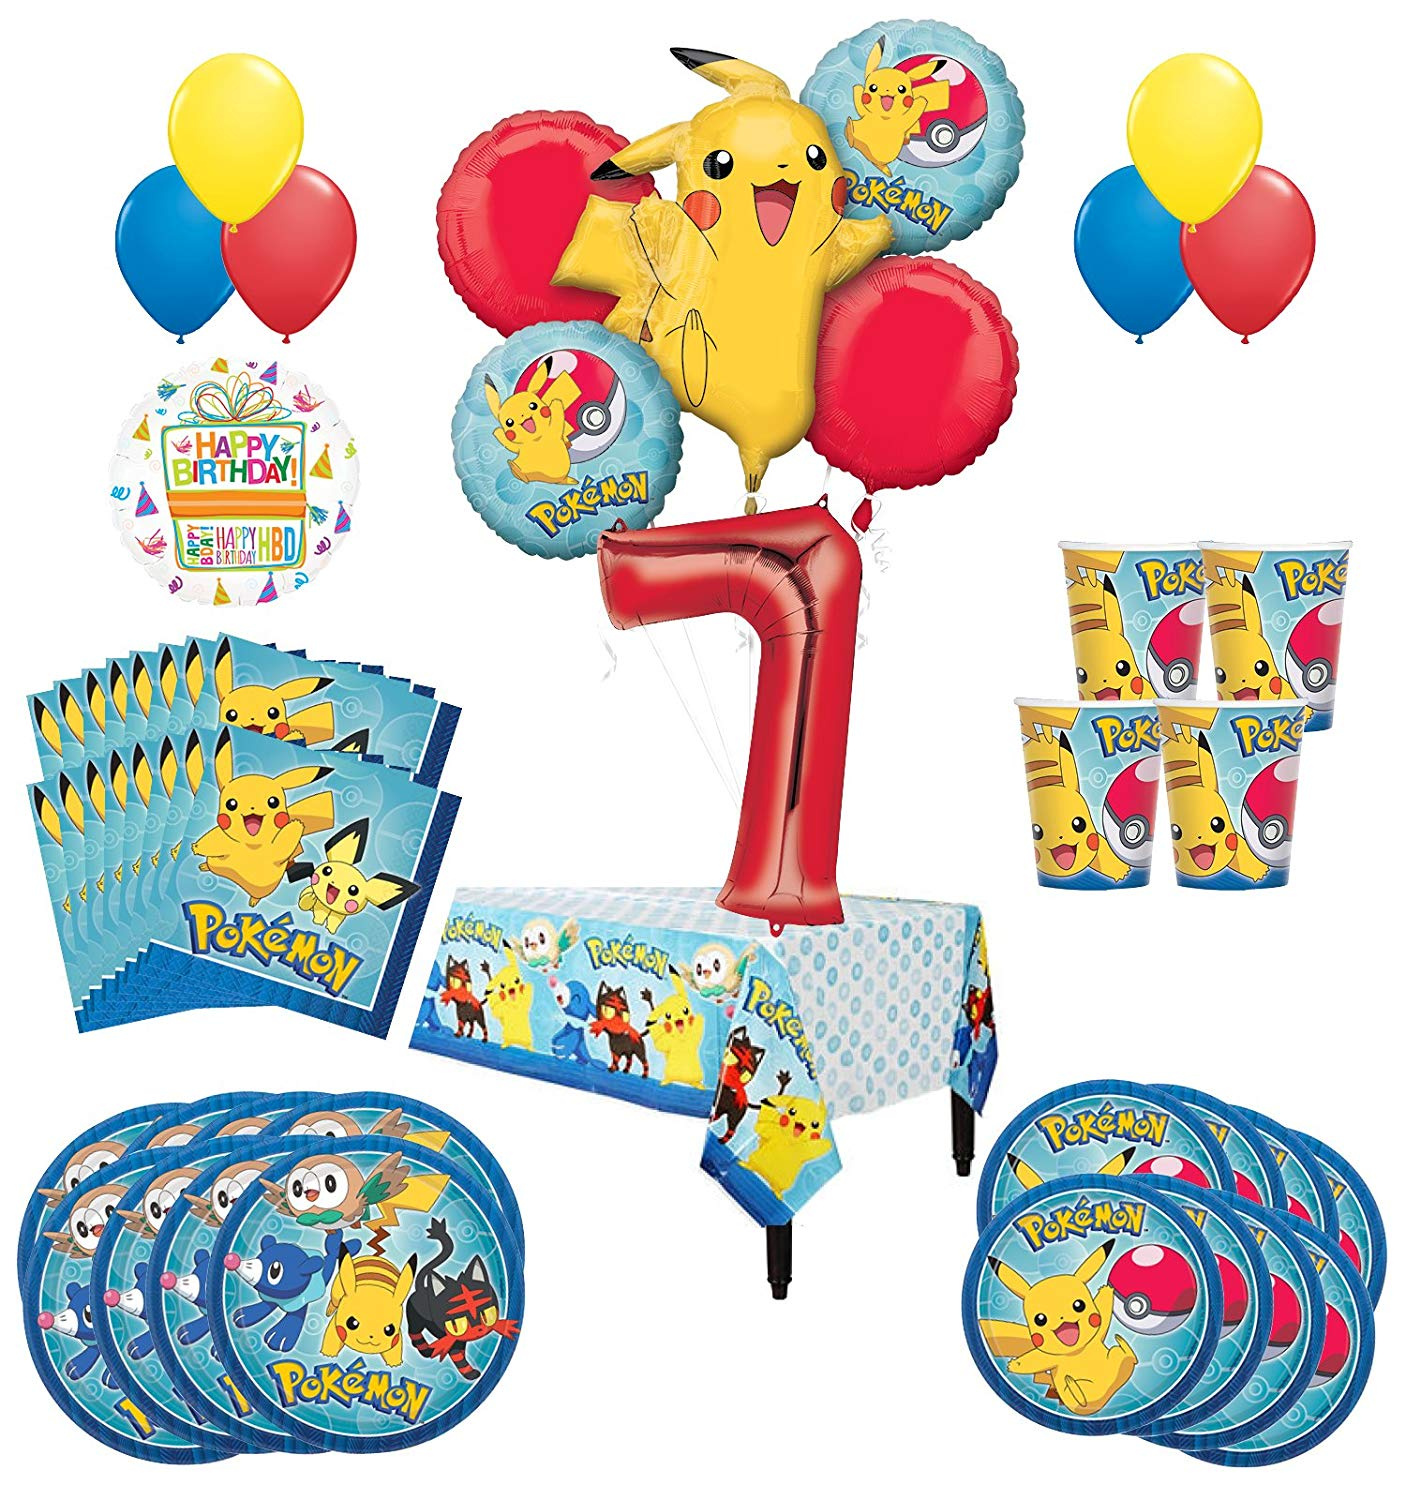 Pokemon 7th Birthday Party Supplies And 8 Guest 54pc Balloon